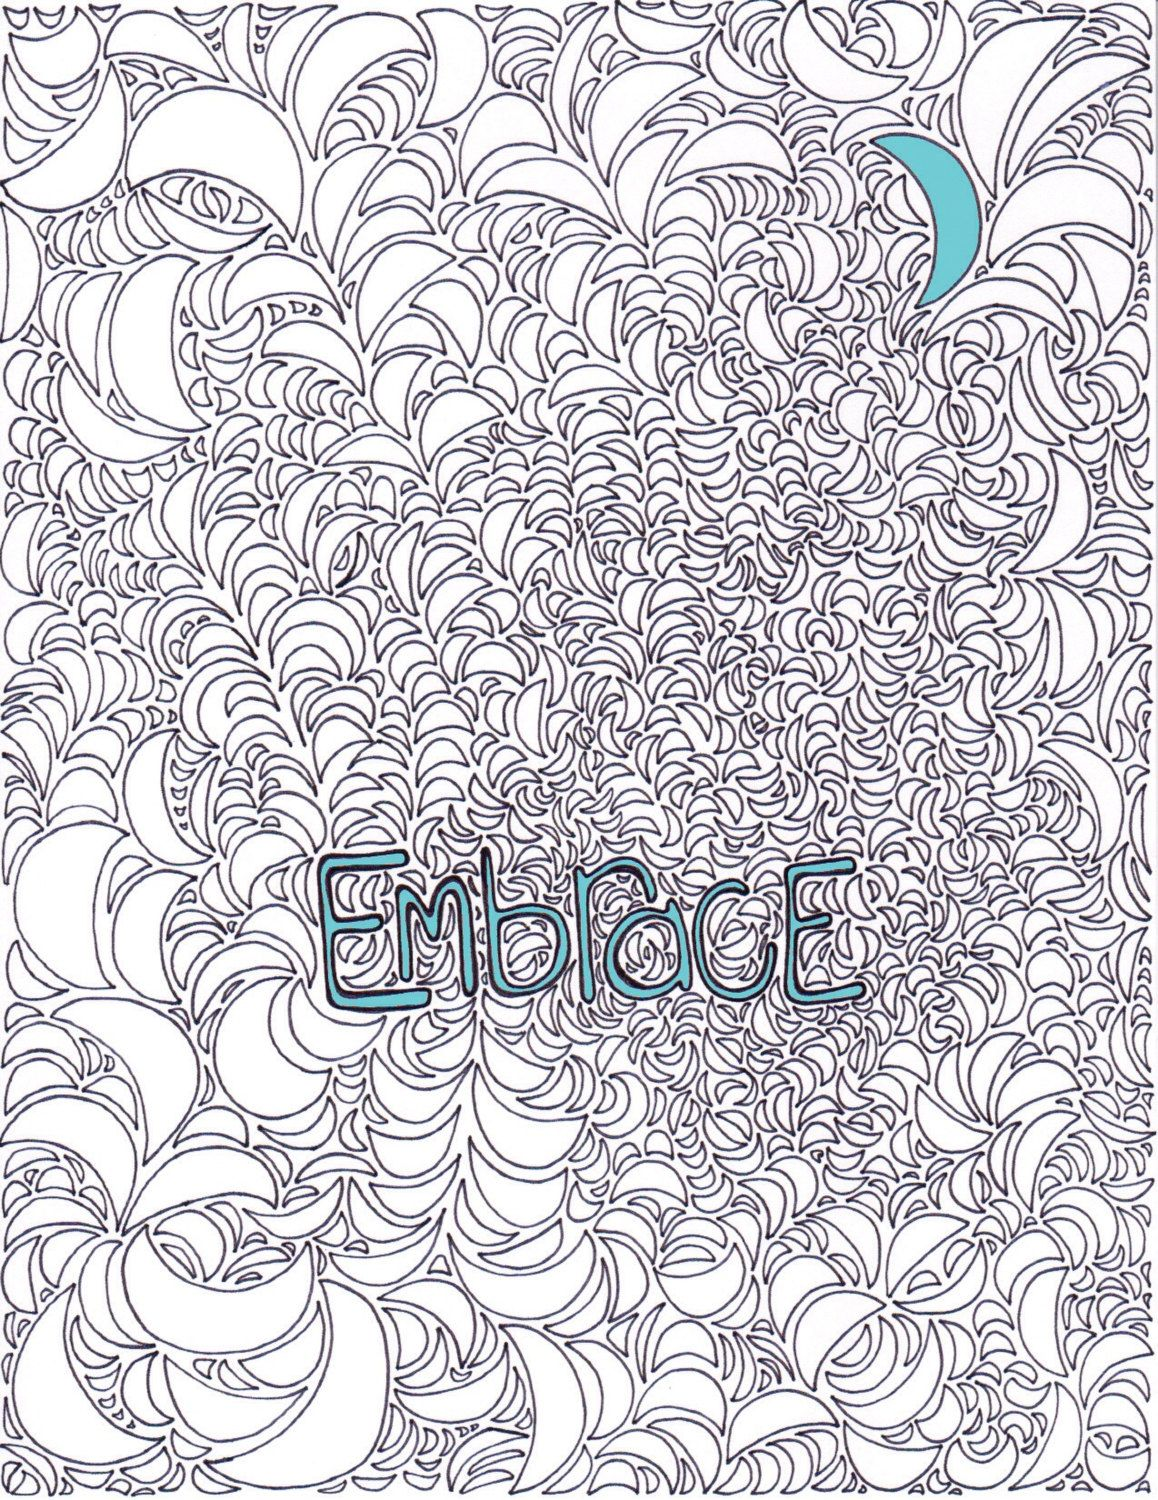 Inspirational coloring page embrace adult coloring book moon